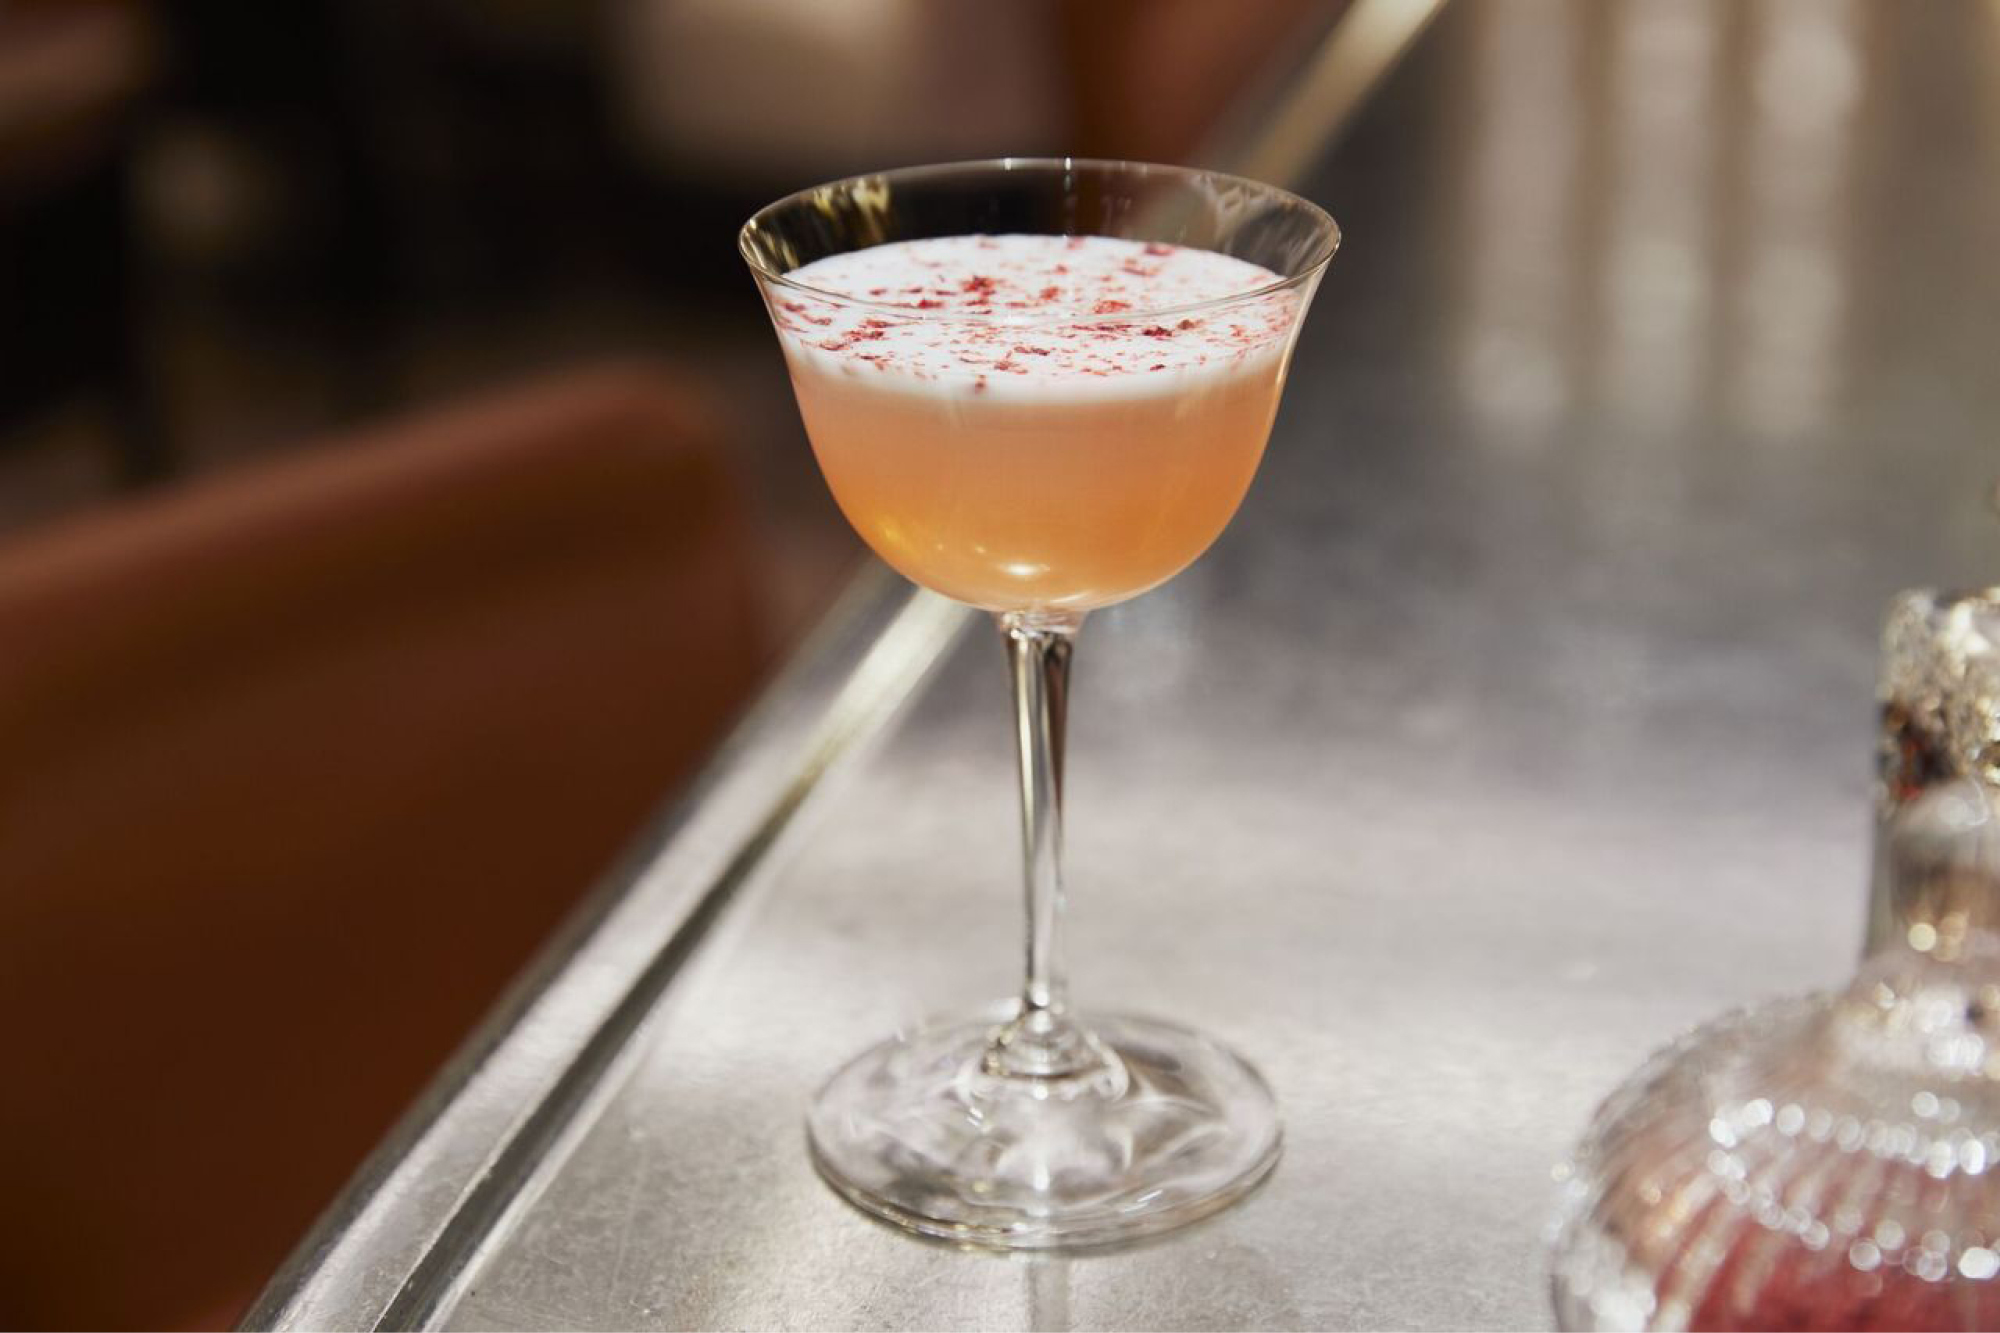 Mix up a Tangerine Tipple from The Dorchester Grill Bar this World Whisky Day